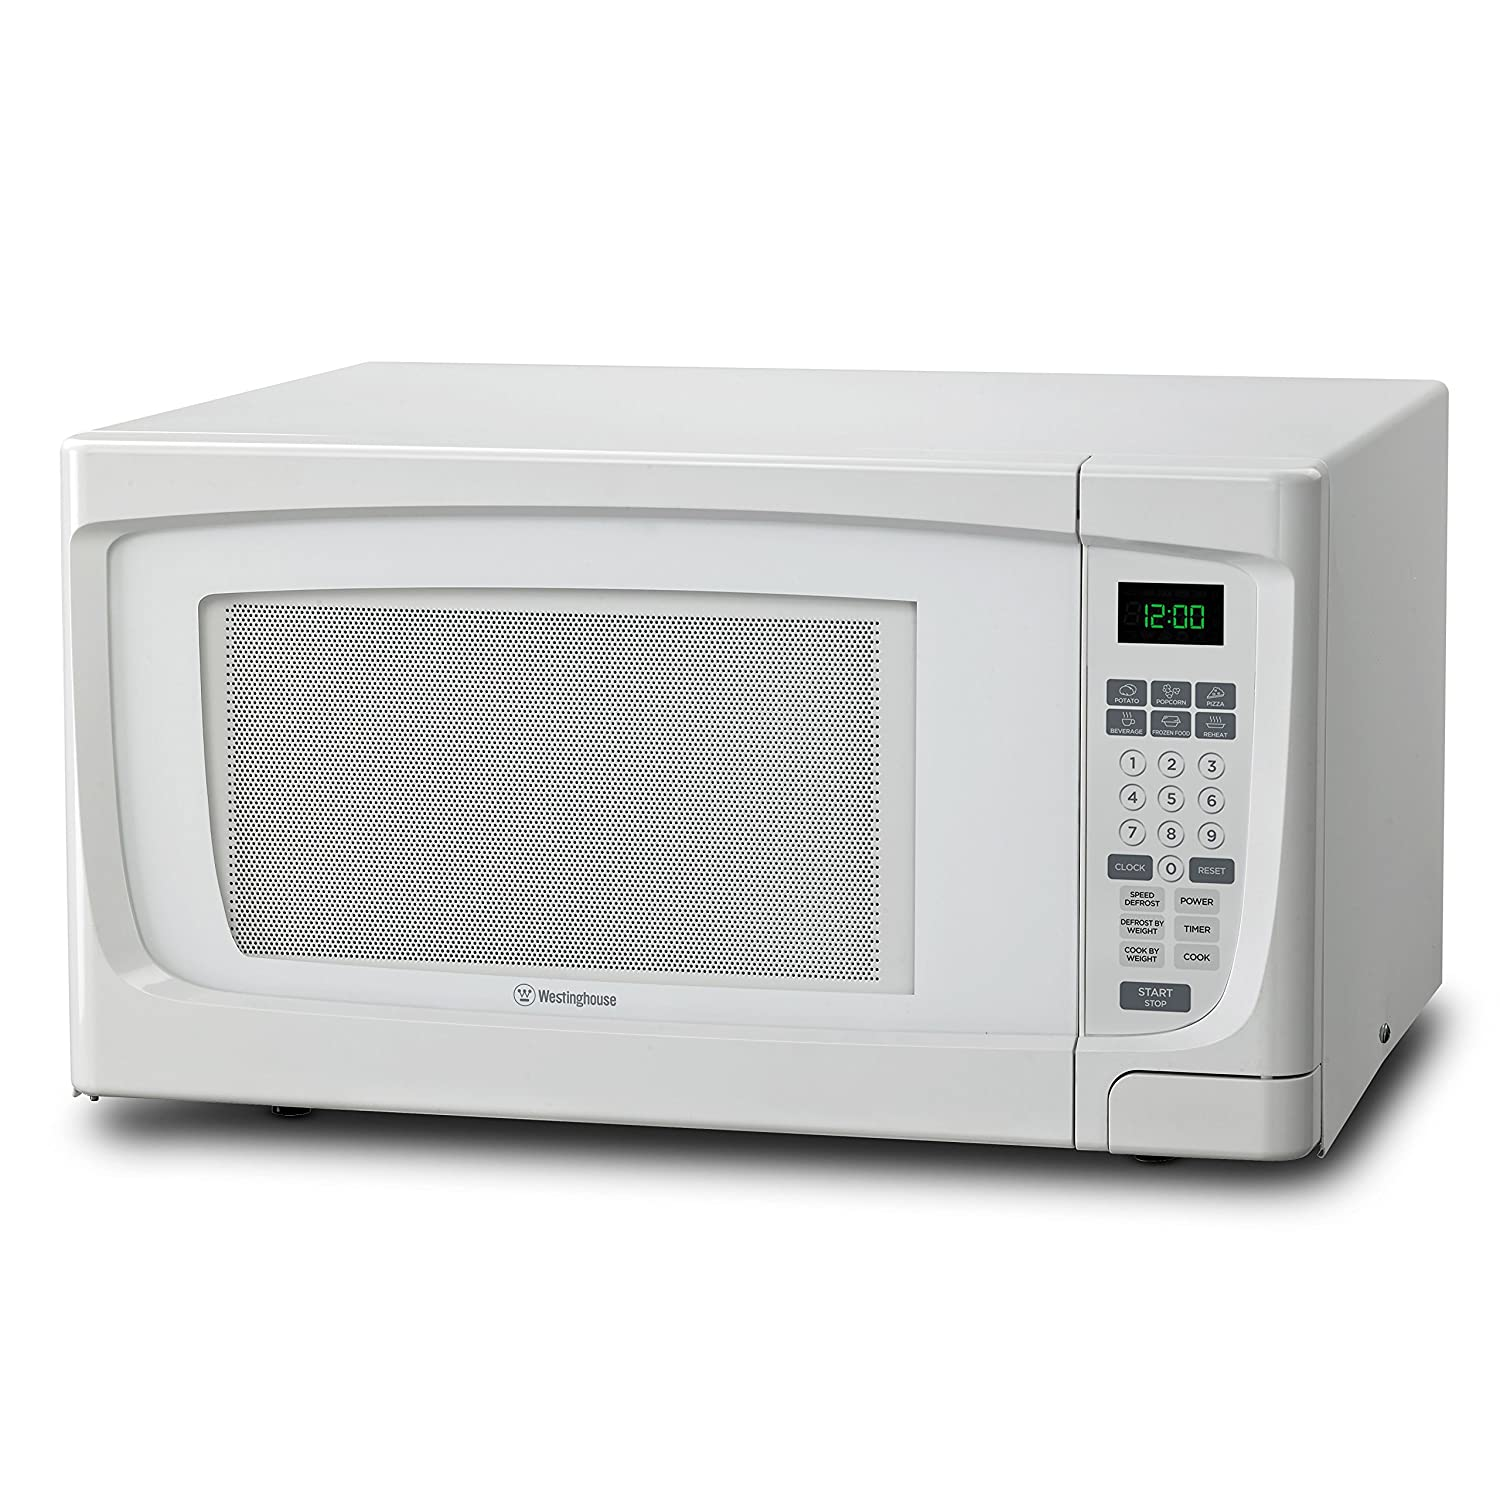 Westinghouse WCM16100W 1000 Watt Counter Top Microwave Oven, 1.6 Cubic Feet, White Cabinet